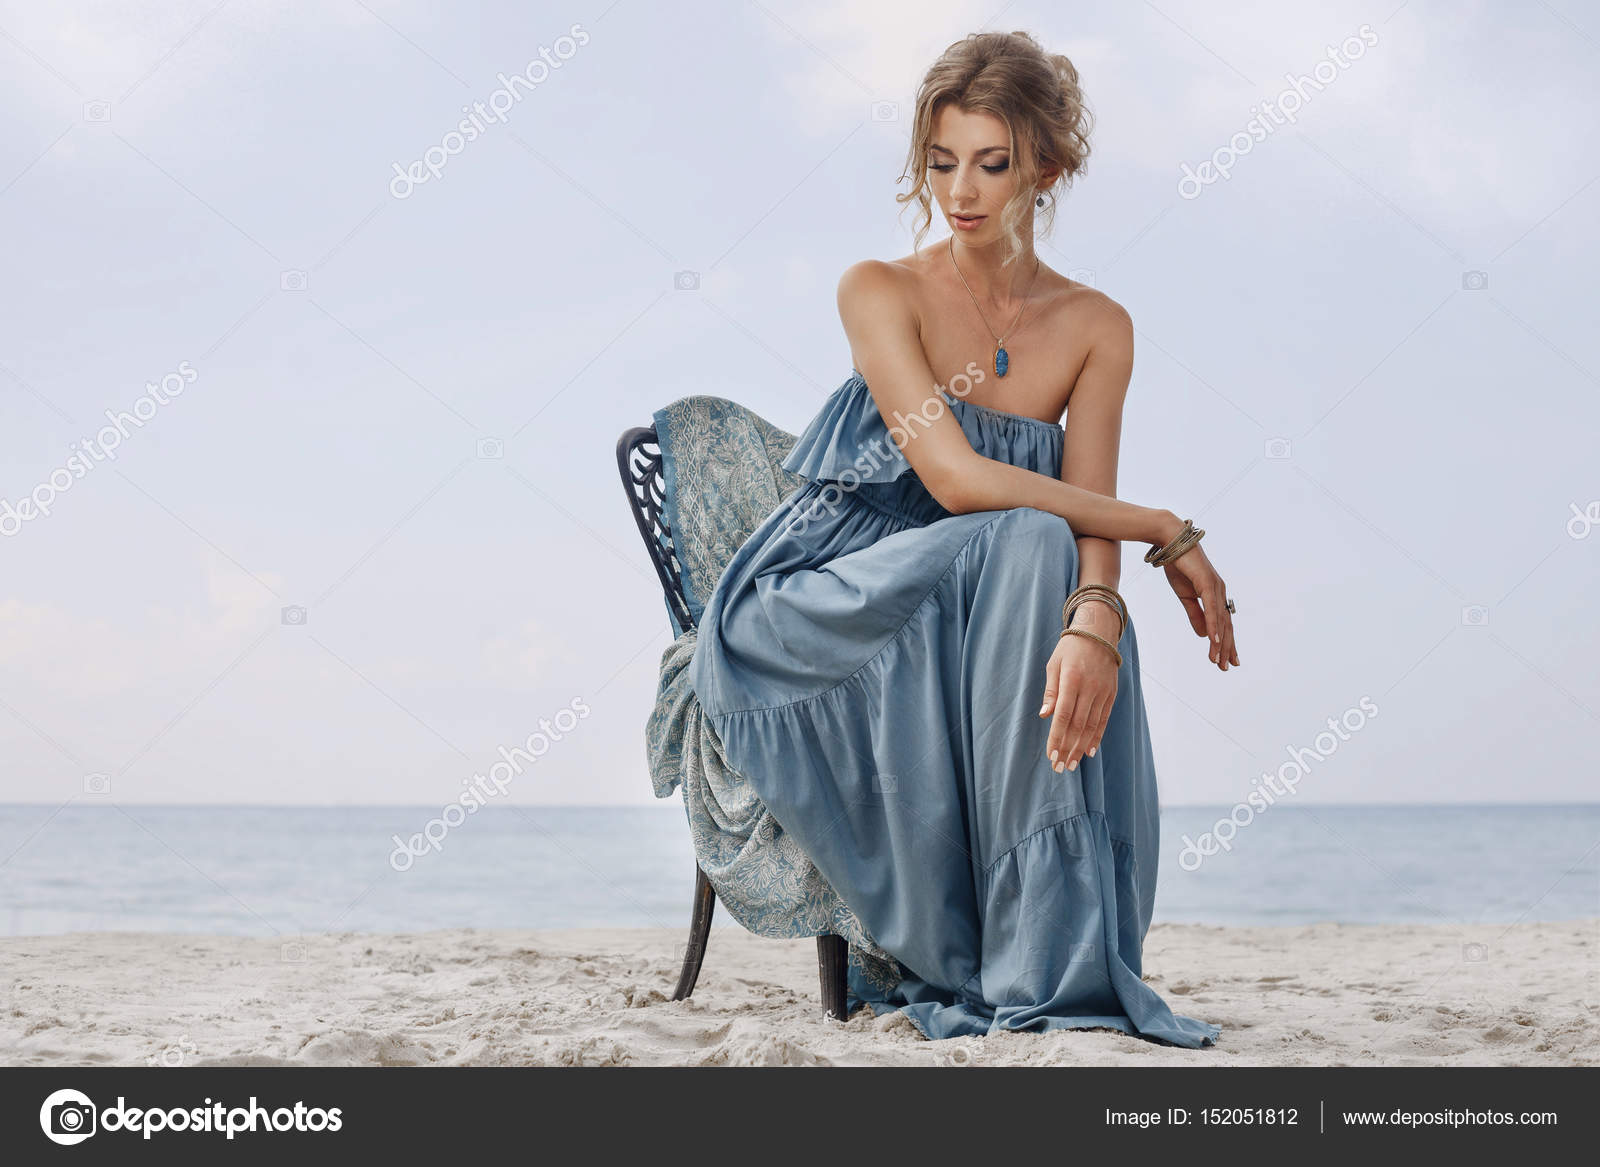 Beautiful Young Bride Sitting On Chair On The Beach Stock Photo Image By C Zolotareva123 152051812